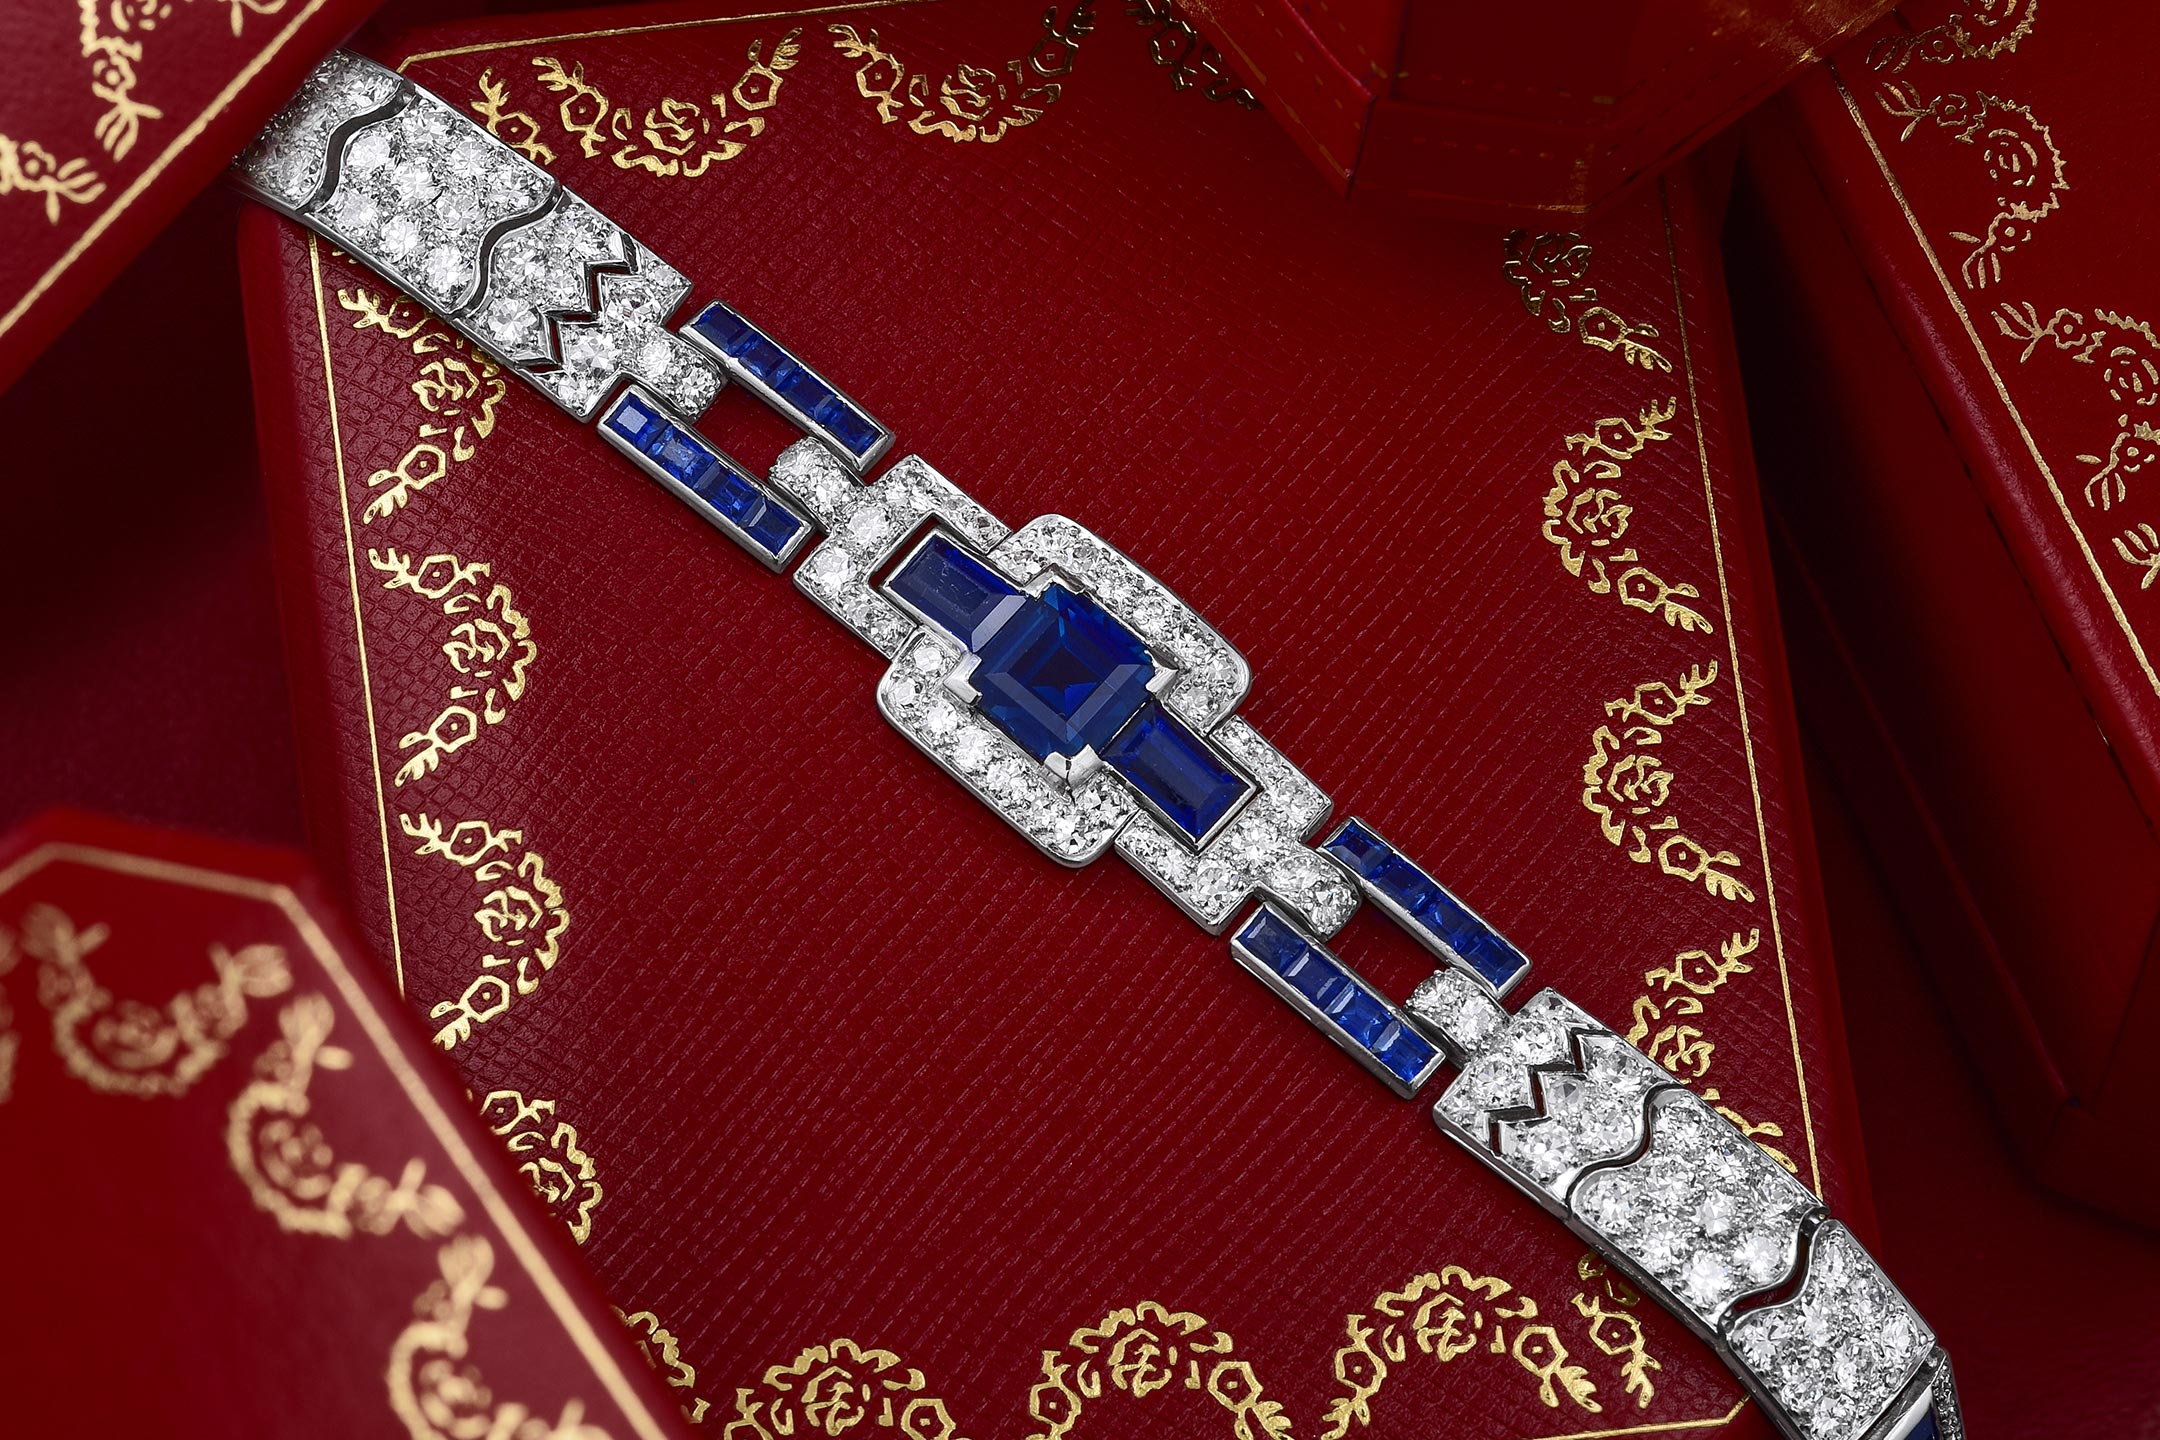 Art Deco Cartier Sapphire and Diamond Bracelet - Fortuna Fine Jewelry & Watch Auction NYC